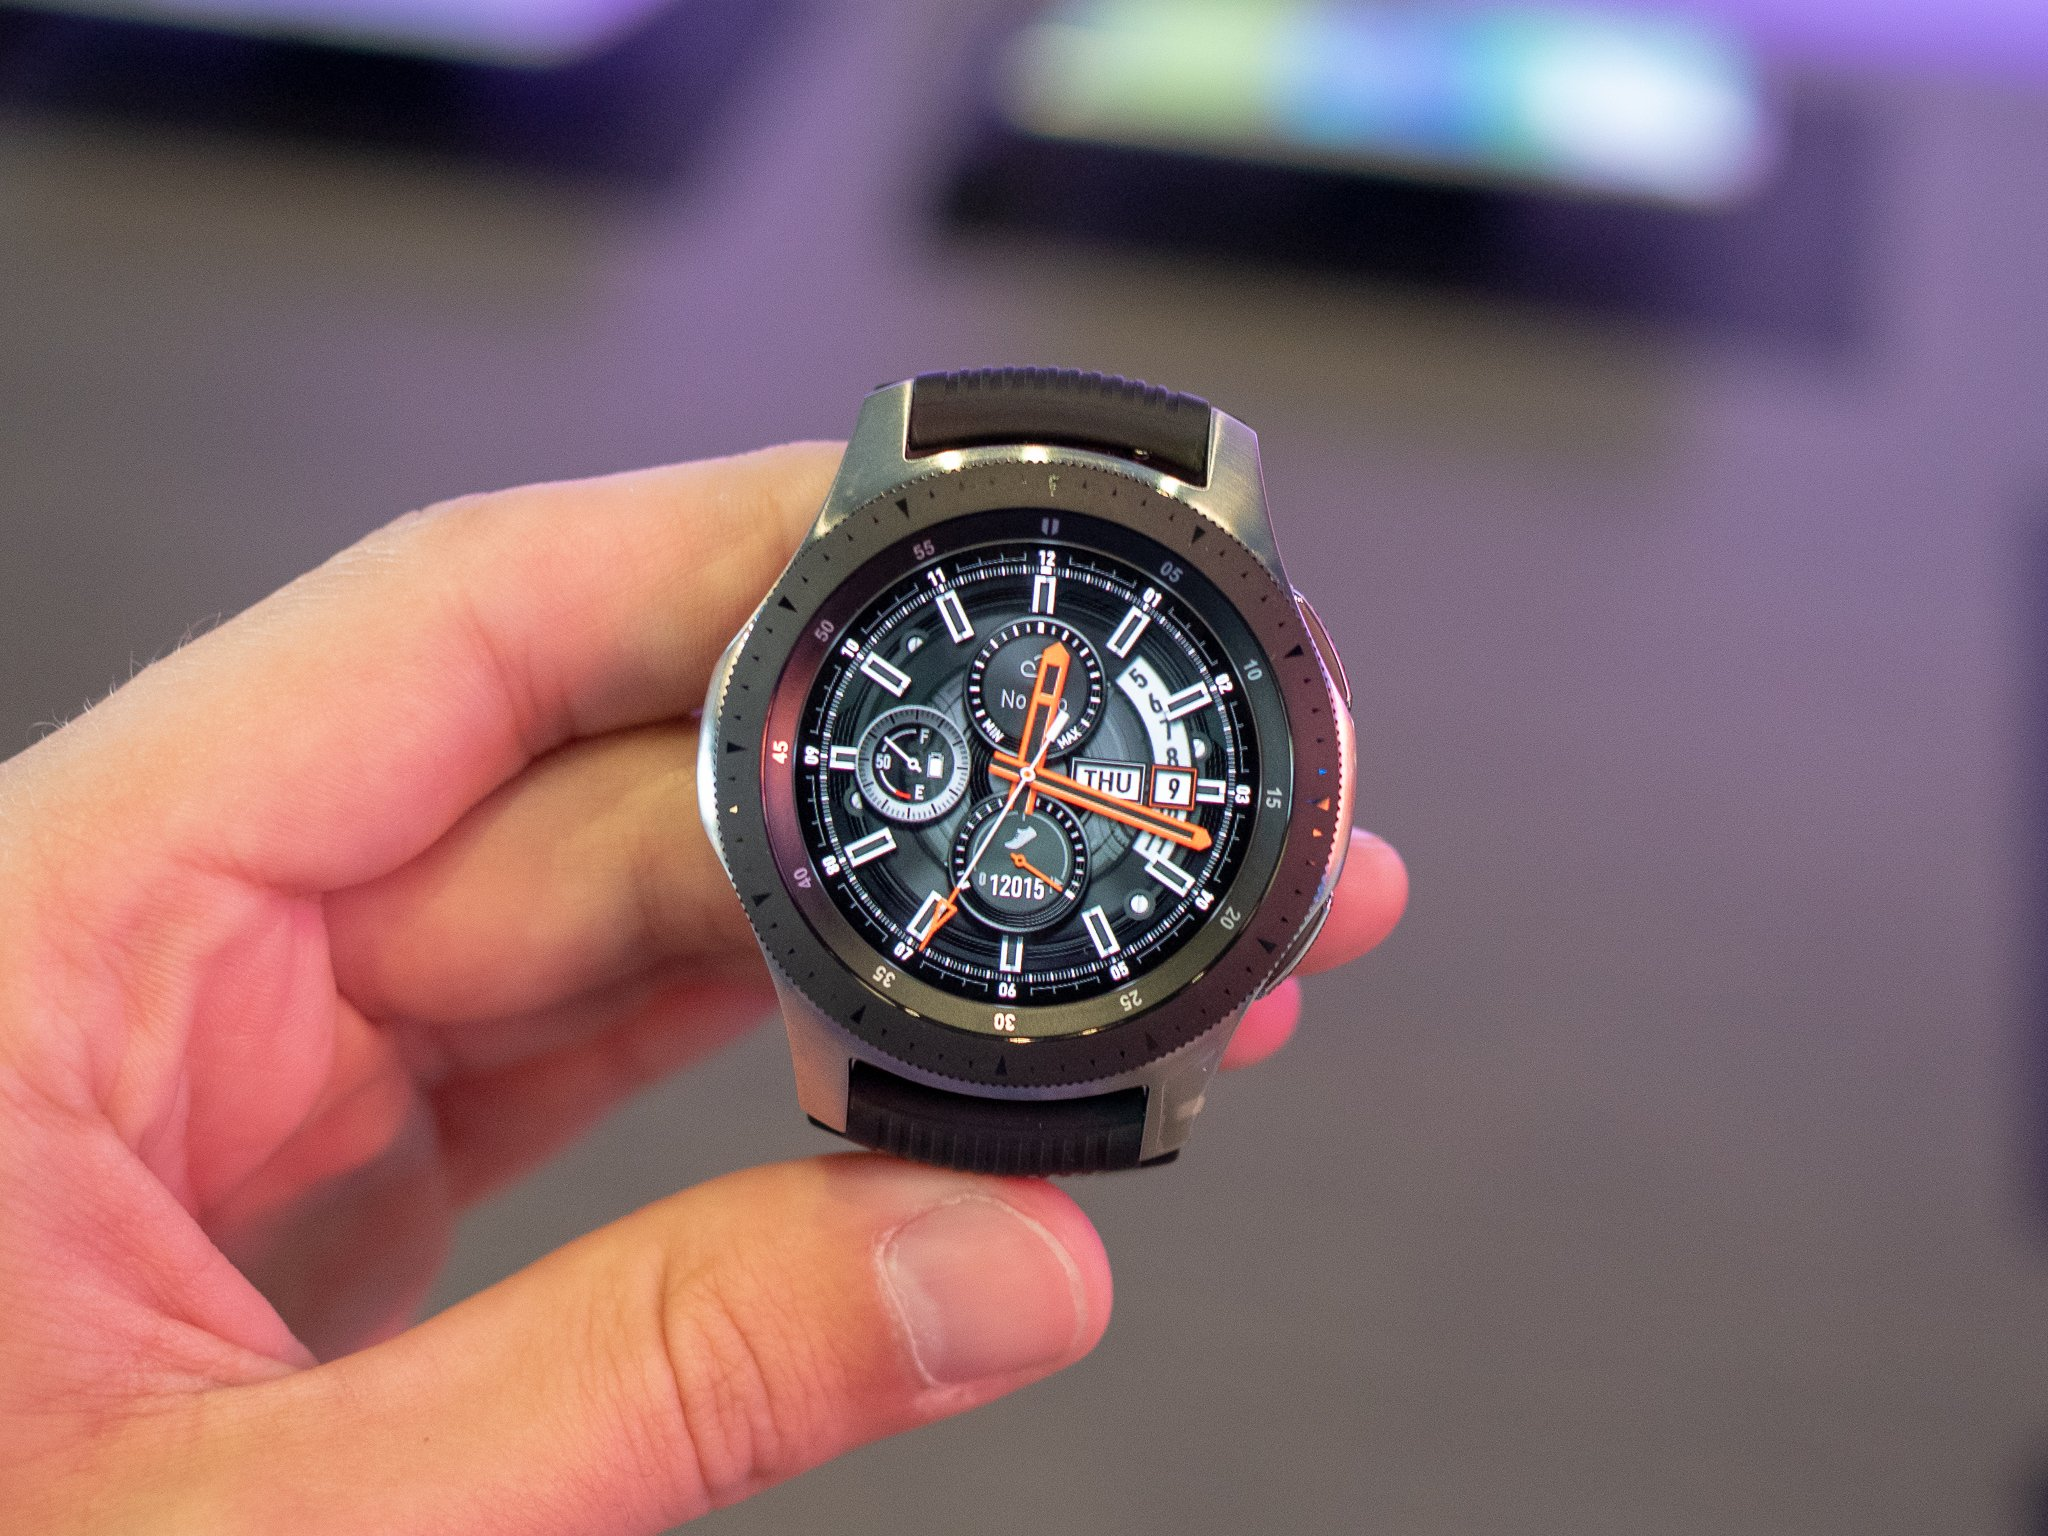 samsung s3 watch instructions manual